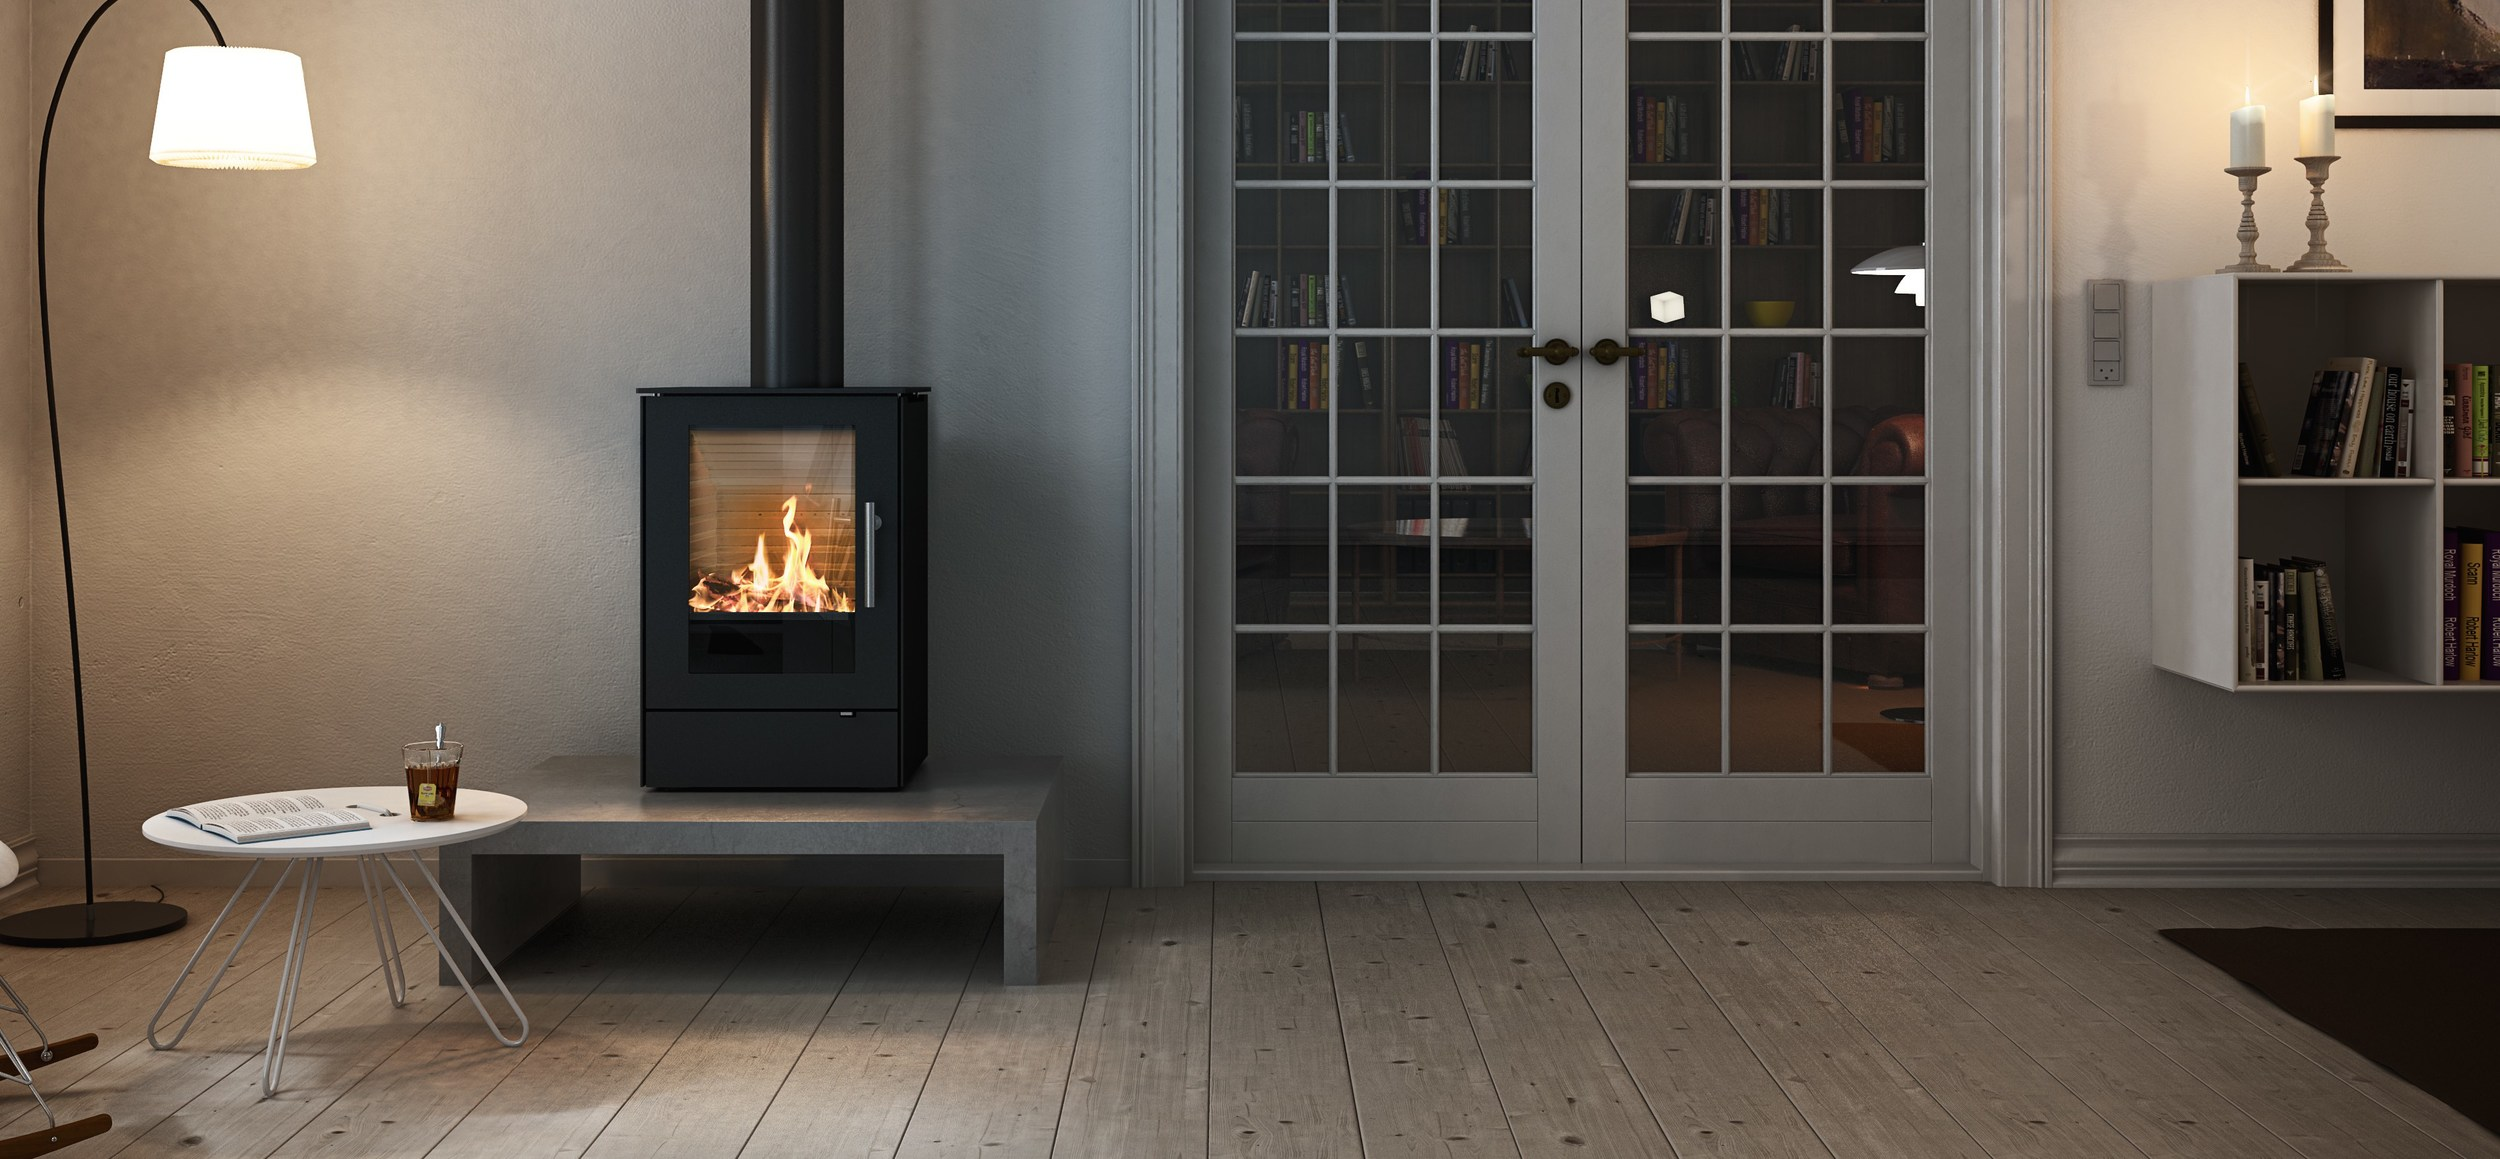 Rais Q-tee on Bench   This wood burner is on display in our showroom - The larger Q-tee2 is also on live display